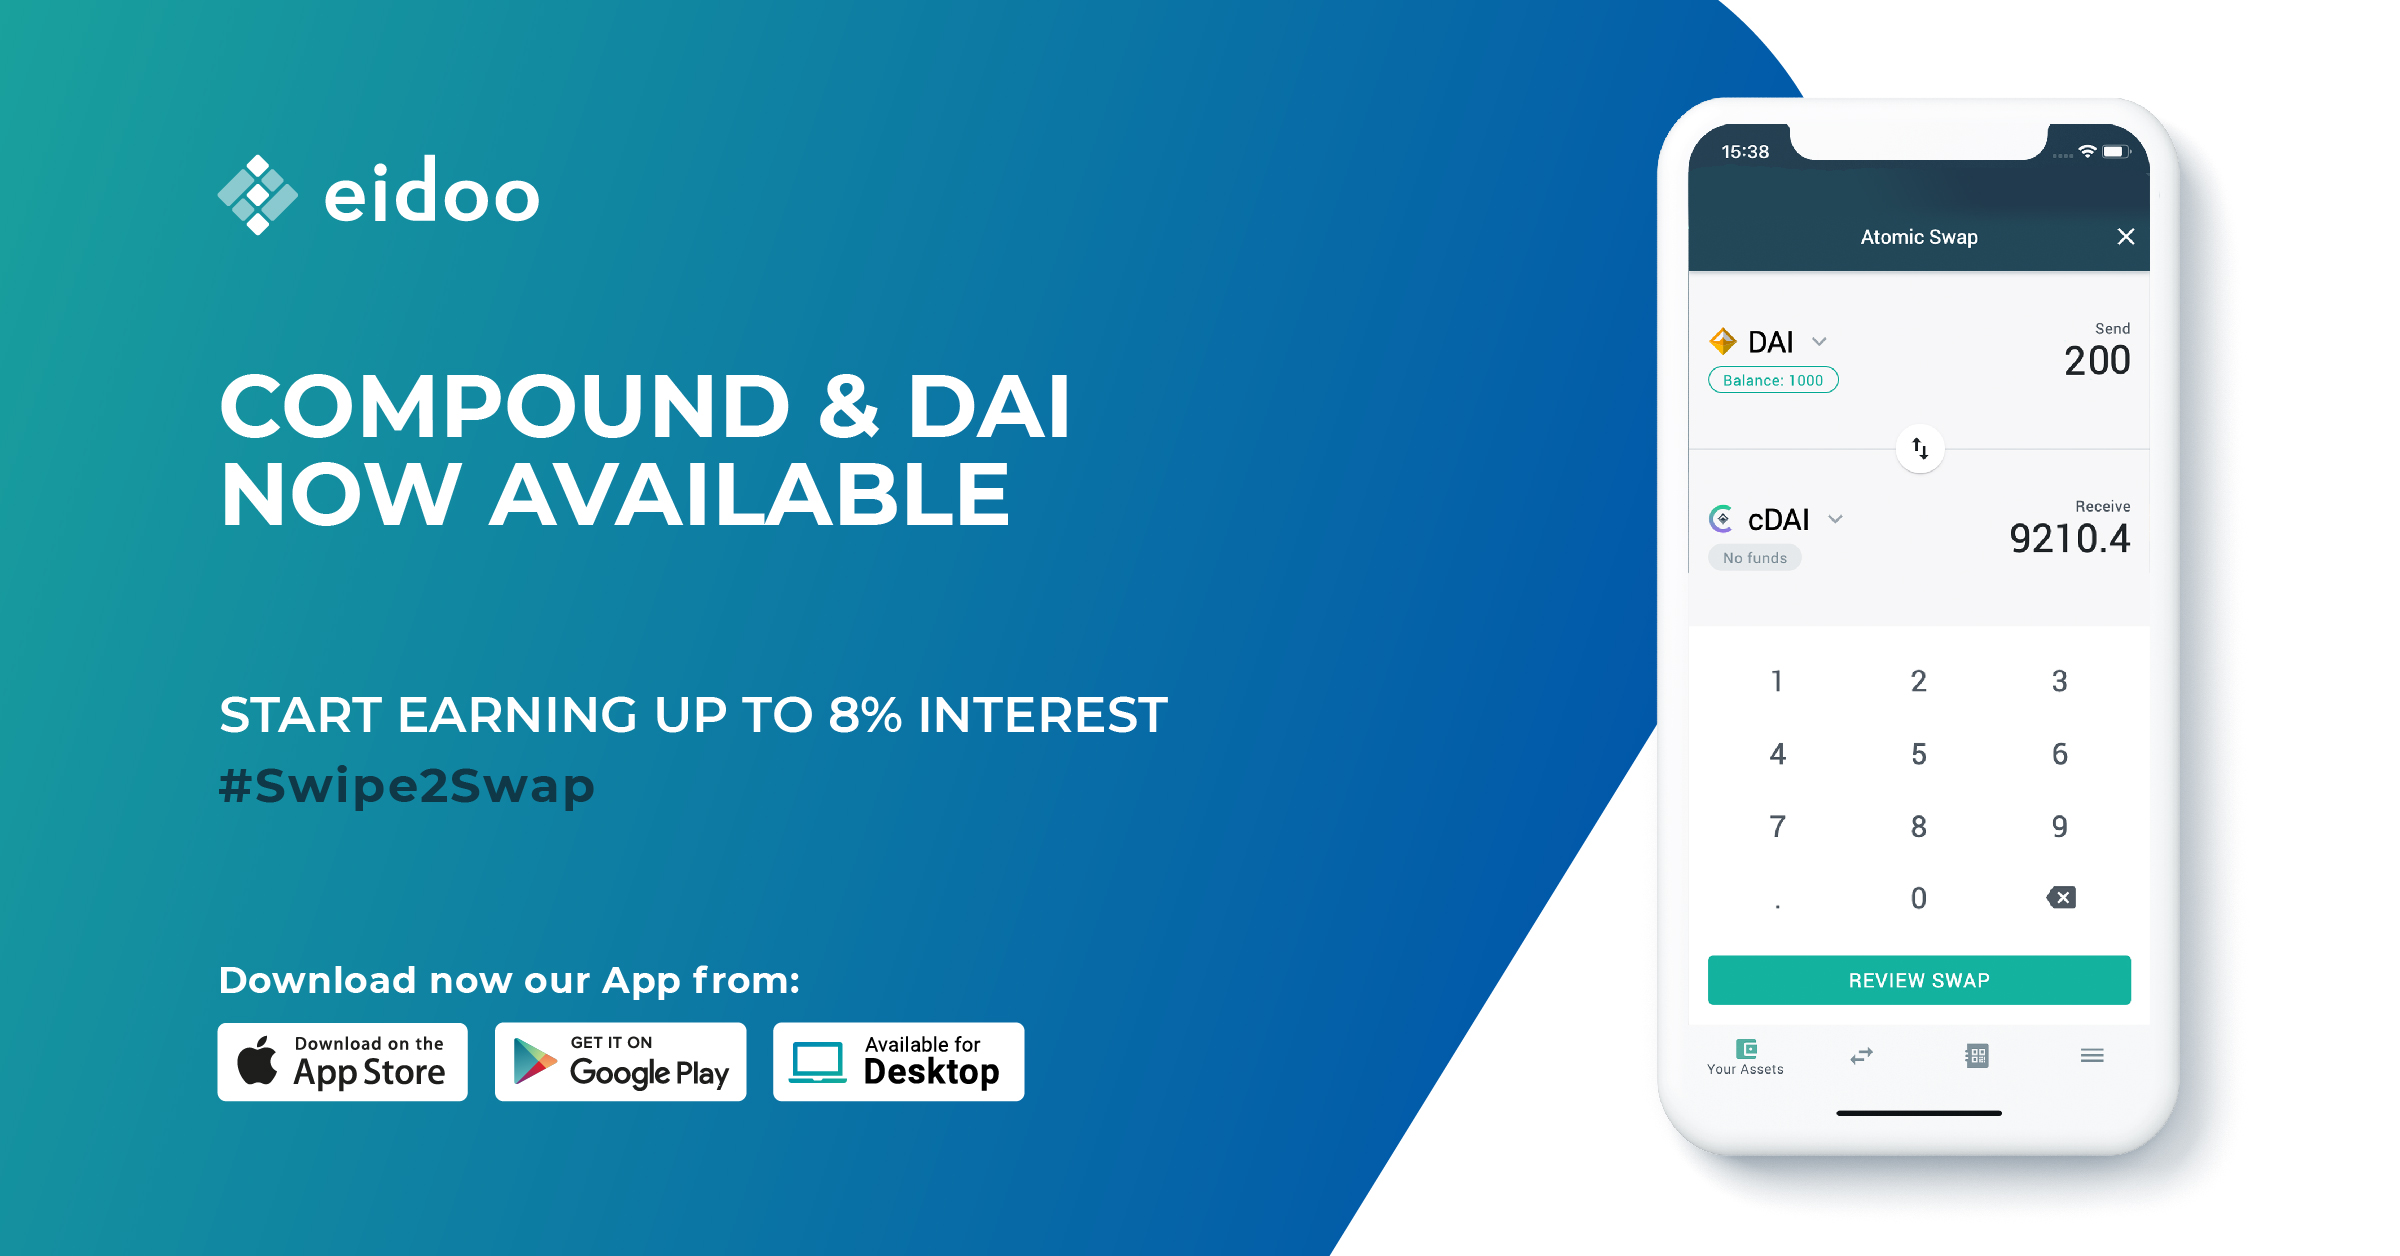 $DAI and COMPOUND now available in the Eidoo Wallet!